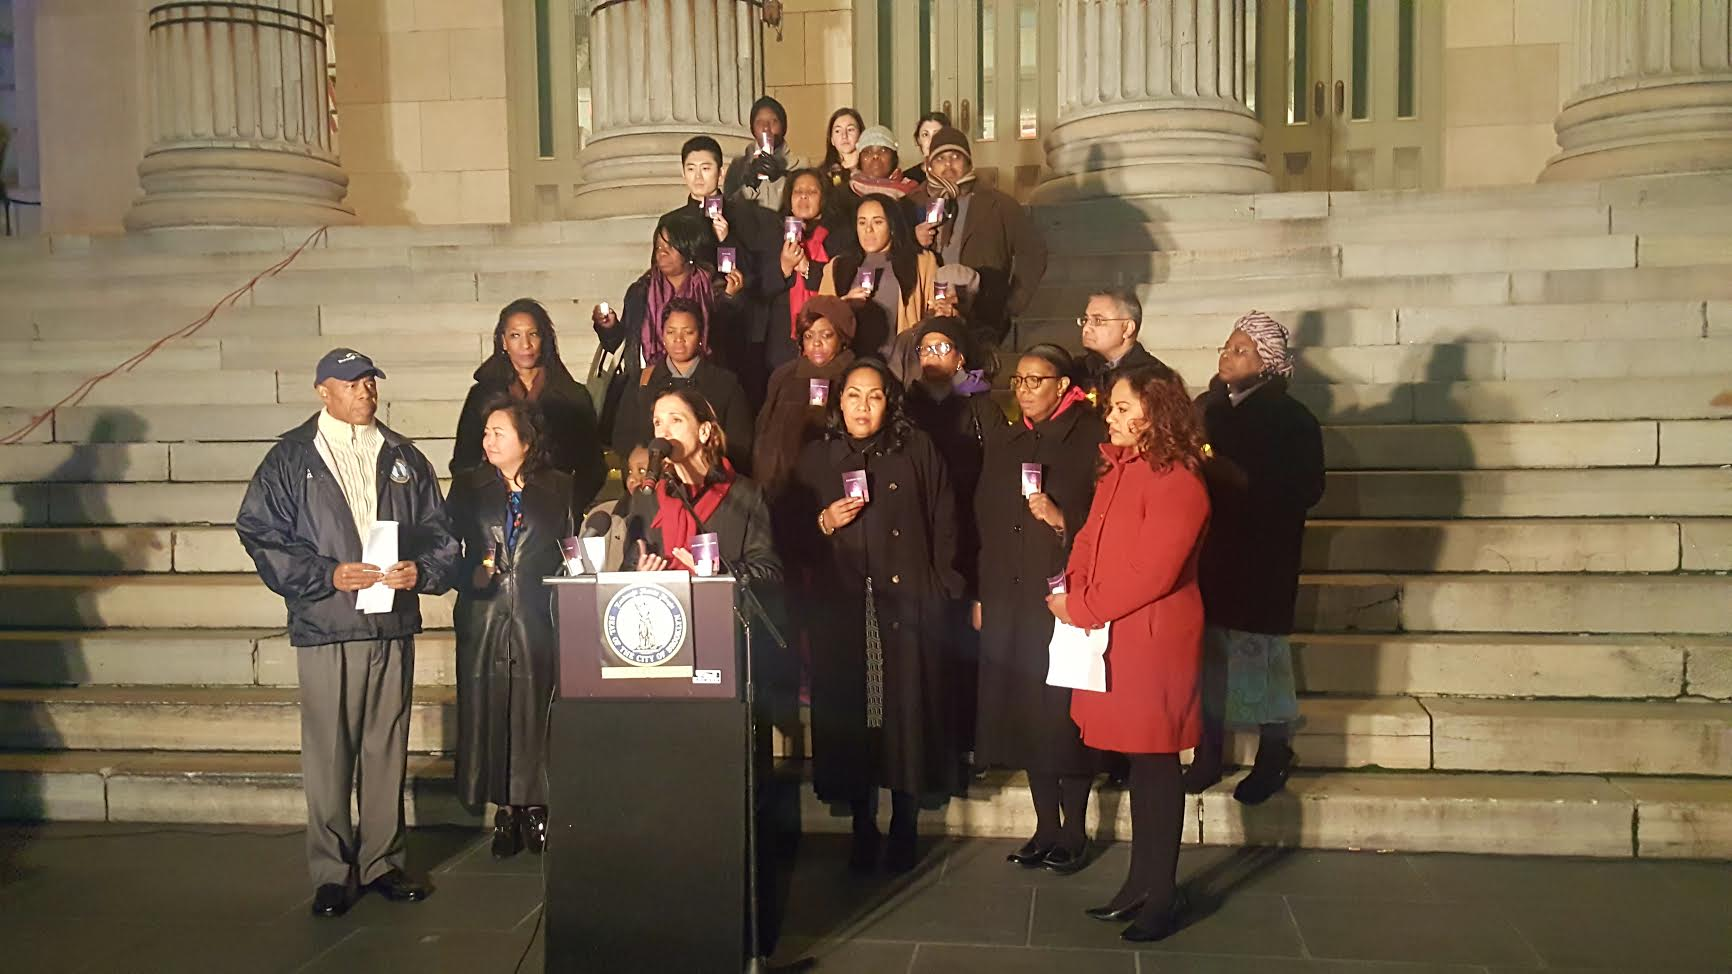 Assemblywoman Amy Paulin spoke at Brooklyn Borough Hall during the rally to mark the anniversary and re-authorization of the Violence Against Women Act. She joined Brooklyn Borough President Eric Adams, who organized the event.<br /> <br />